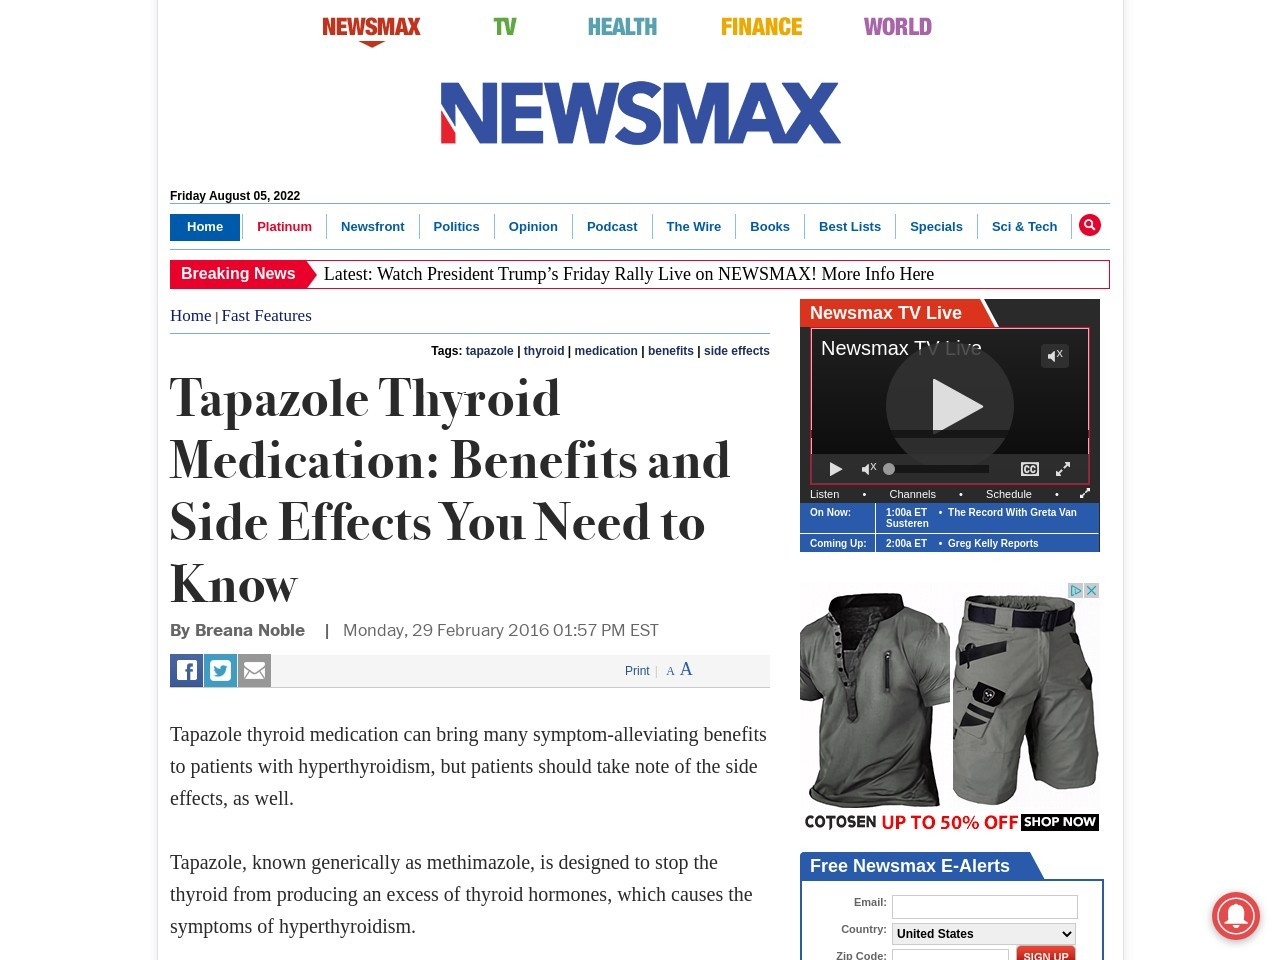 Tapazole Thyroid Medication: Benefits and Side Effects You Need to Know